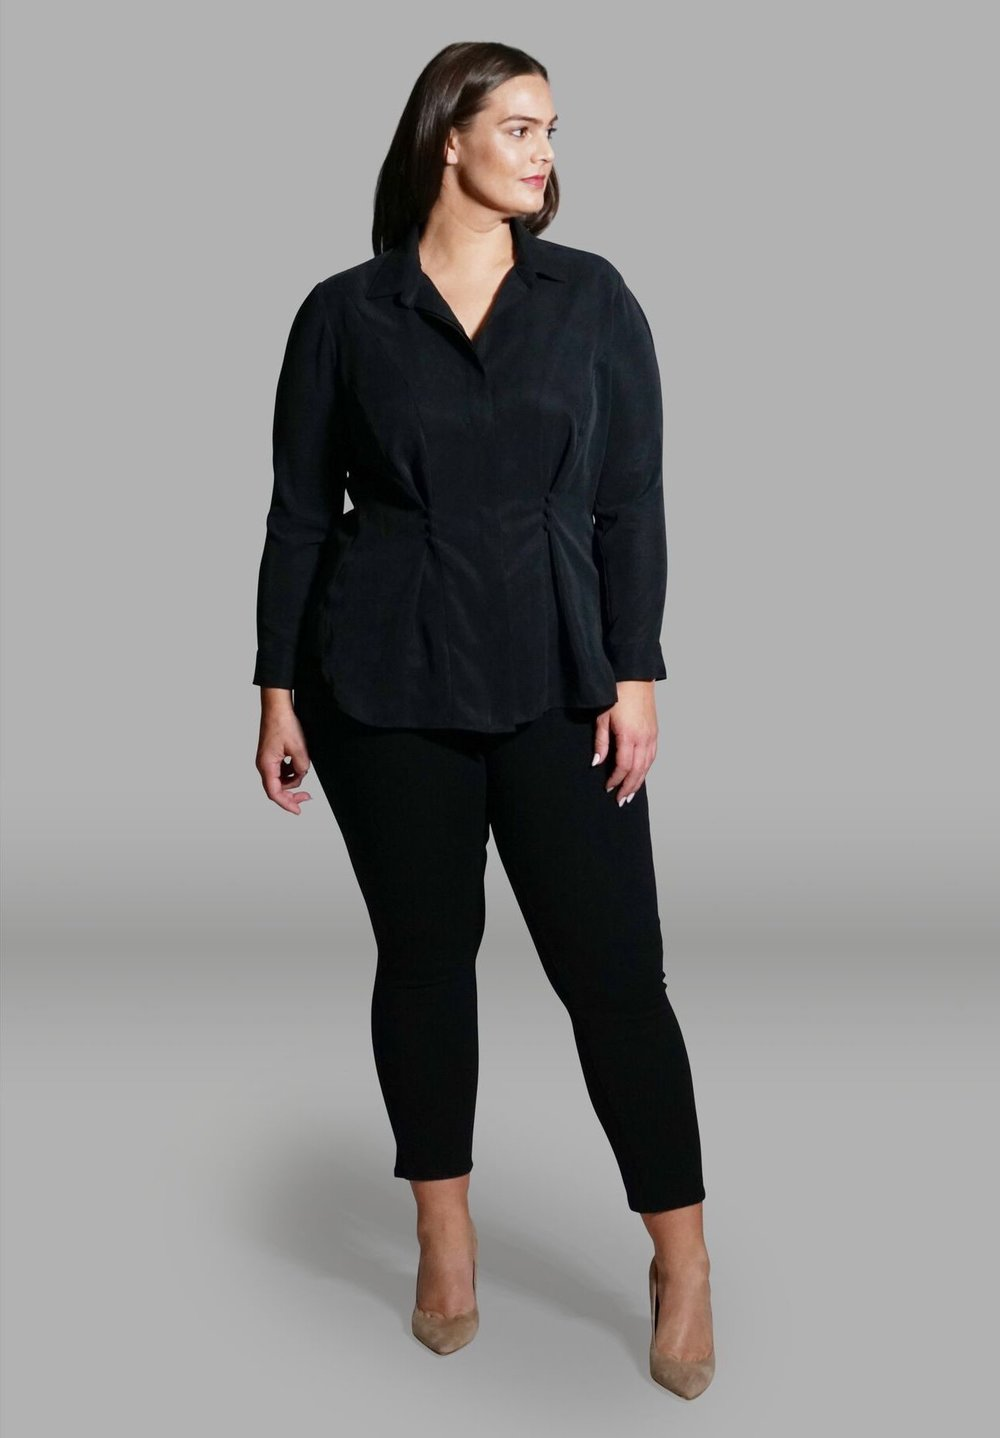 Blouse - black - front 2.jpg